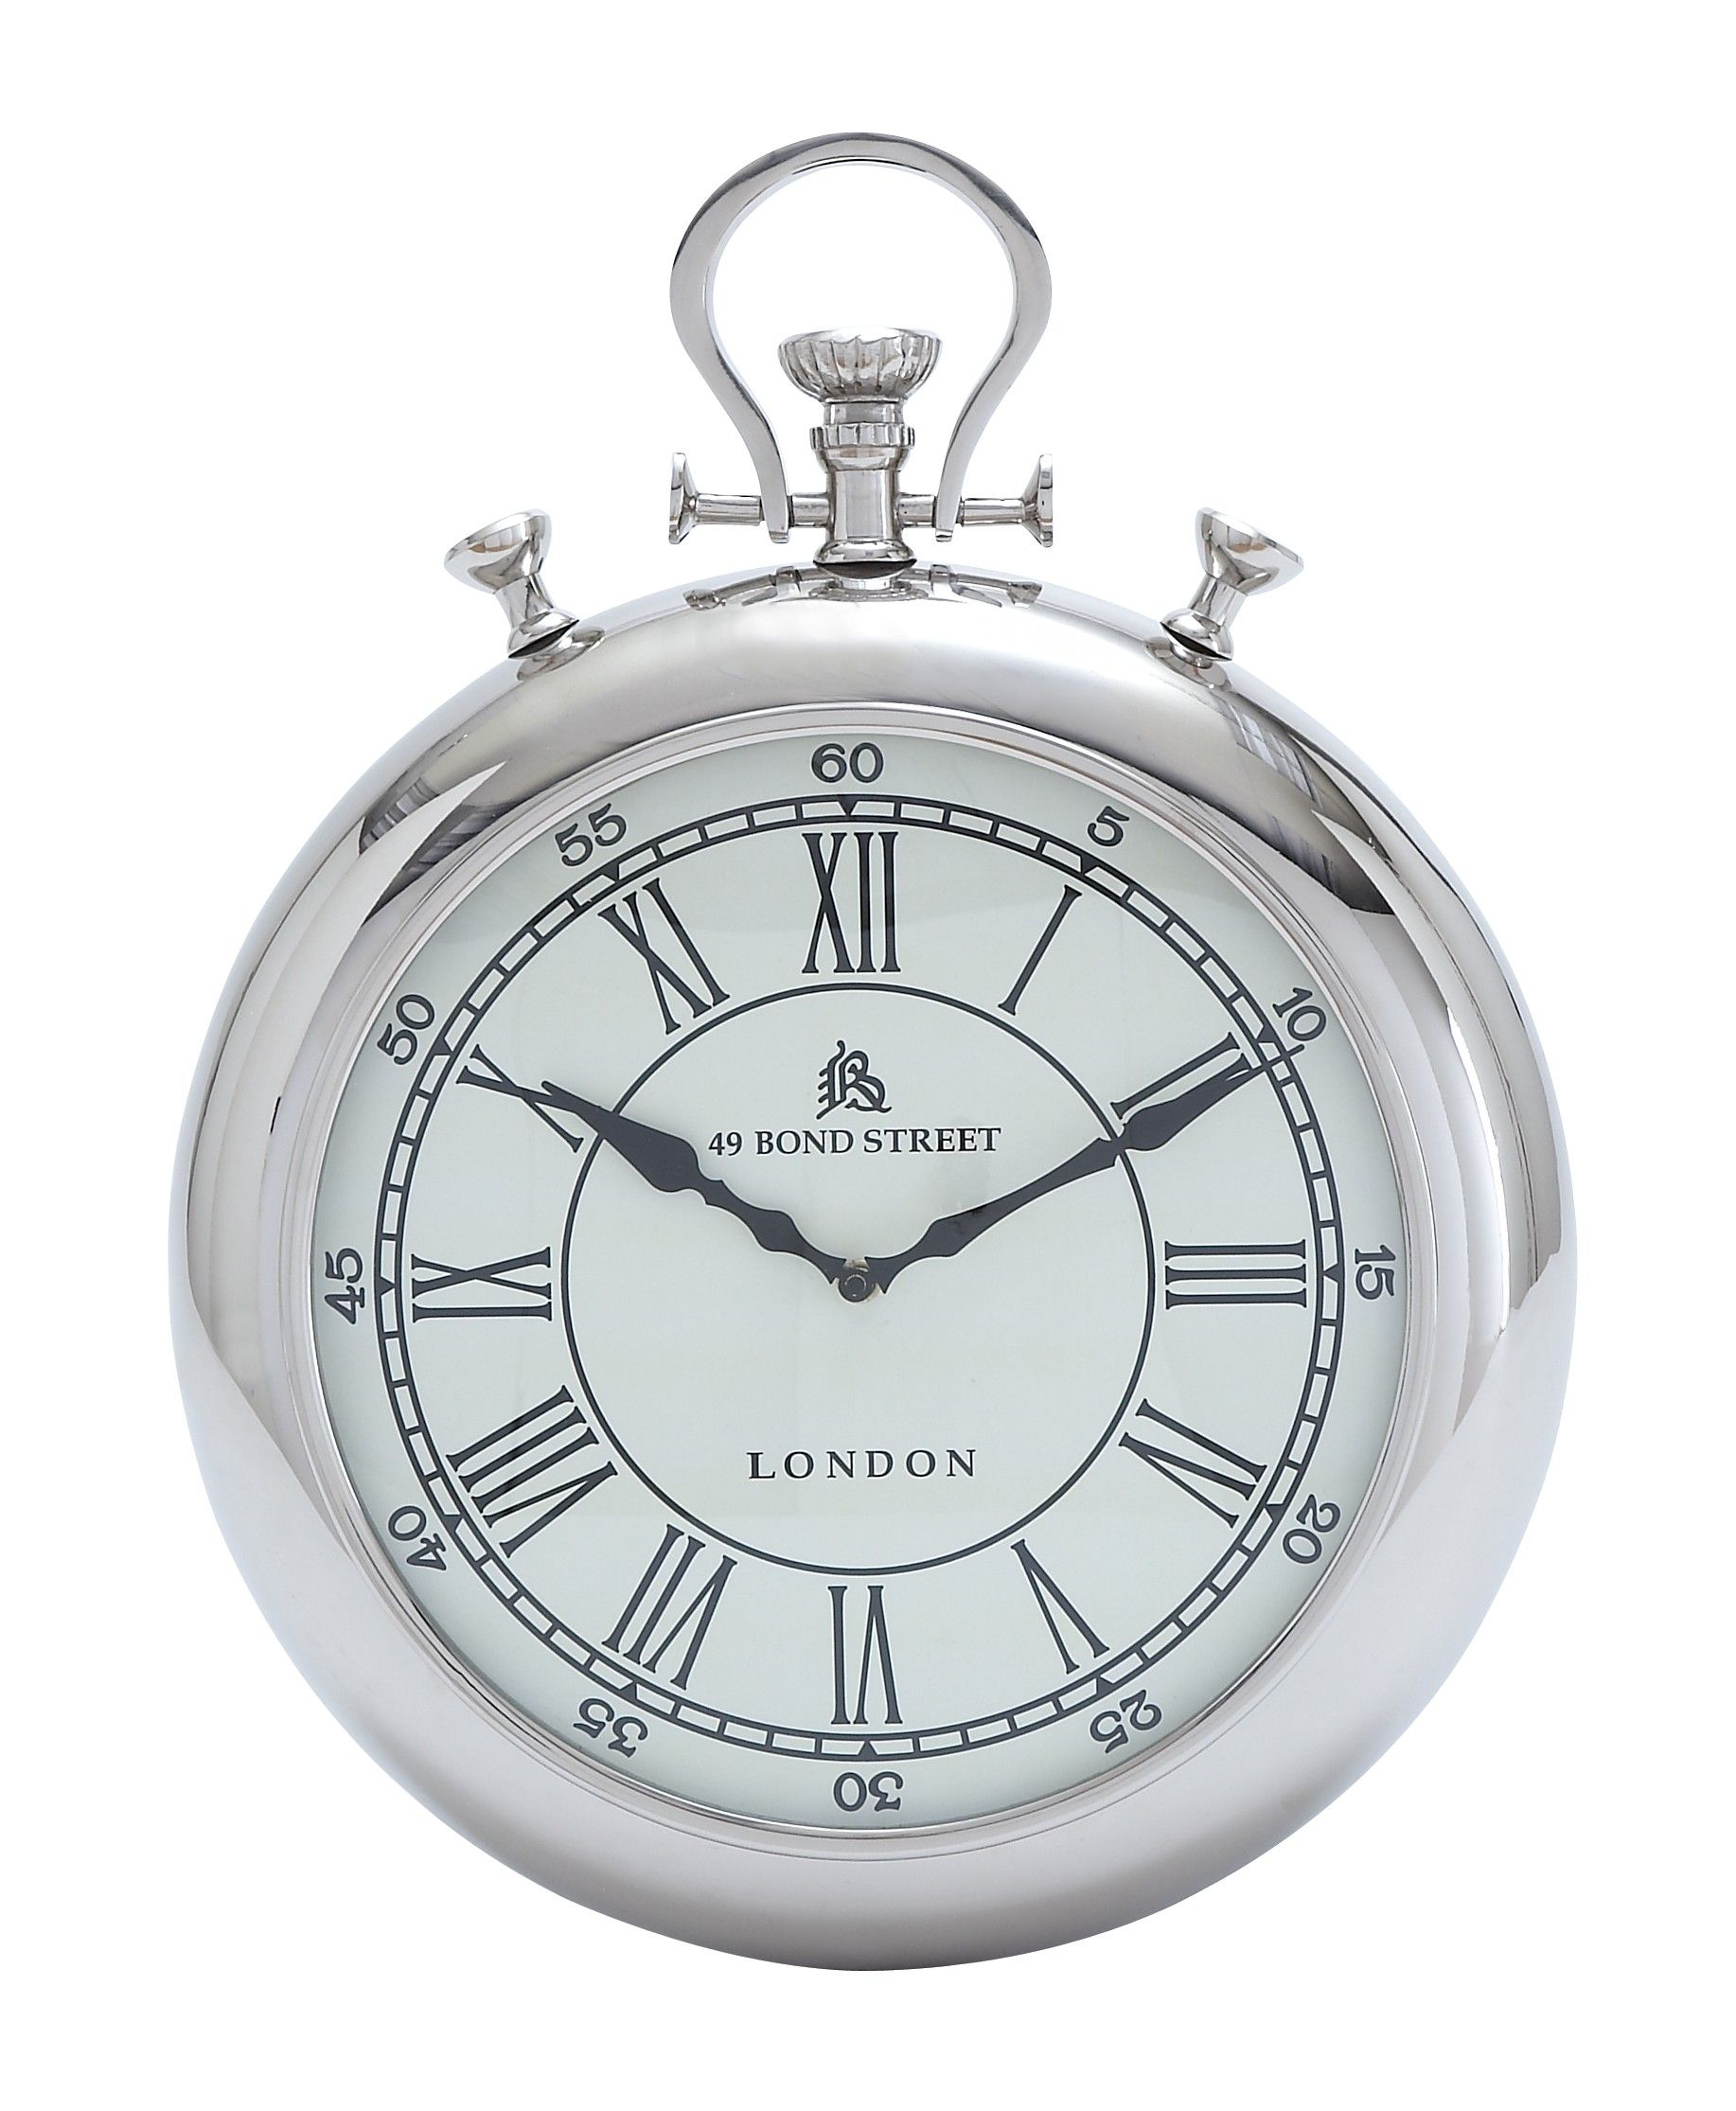 Pocket Watch Design Silver Chrome Finish Wall Clock Accent